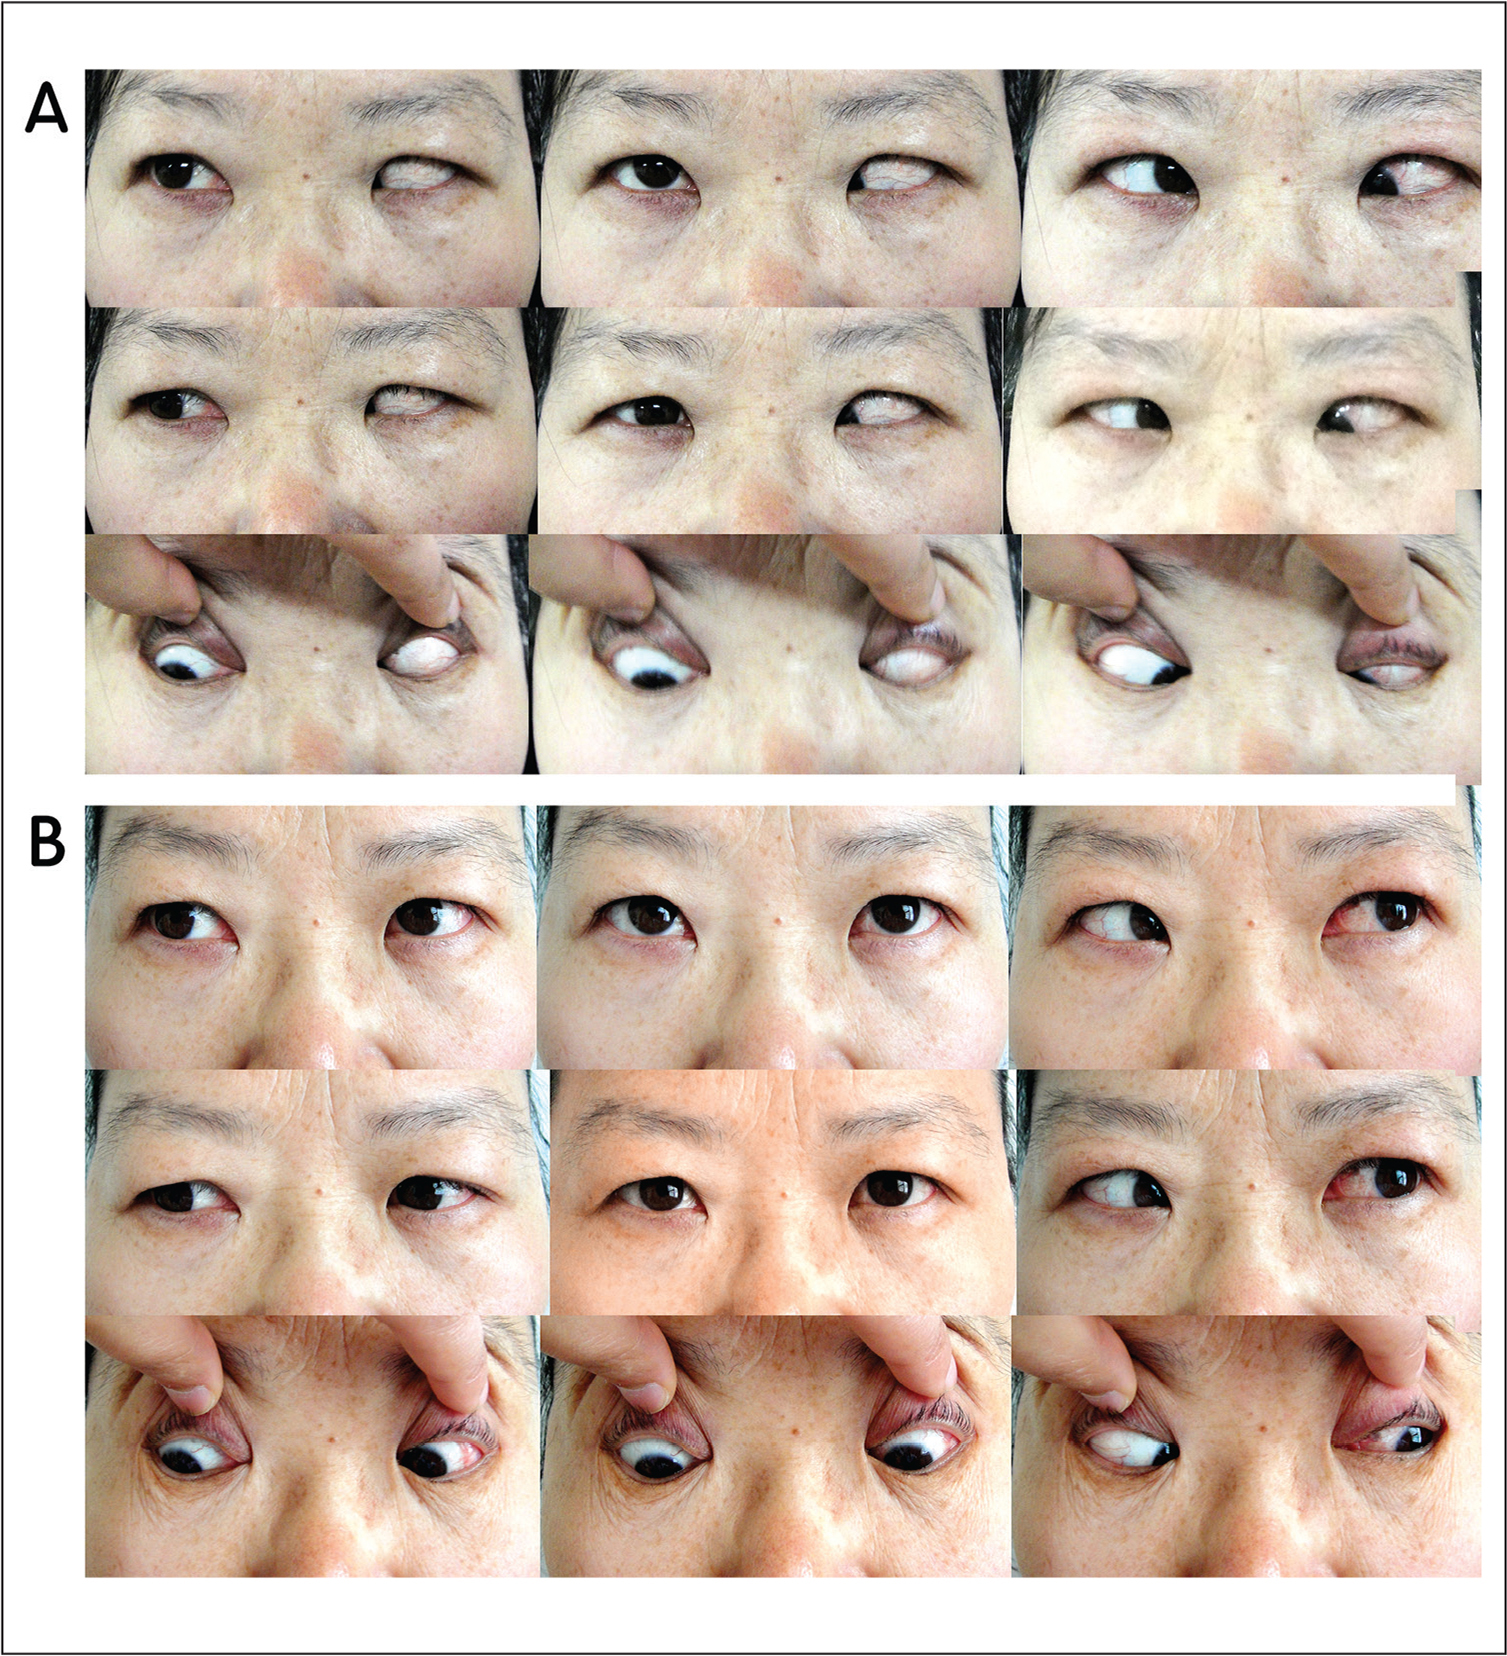 (A) Preoperative photographs showing more than 45° deviation of the left eye and extremely limited superior and lateral ocular motility. (B) Photographs of the same patient at the 3-month follow-up after surgery. The photographs show the primary position and normal ocular motility.